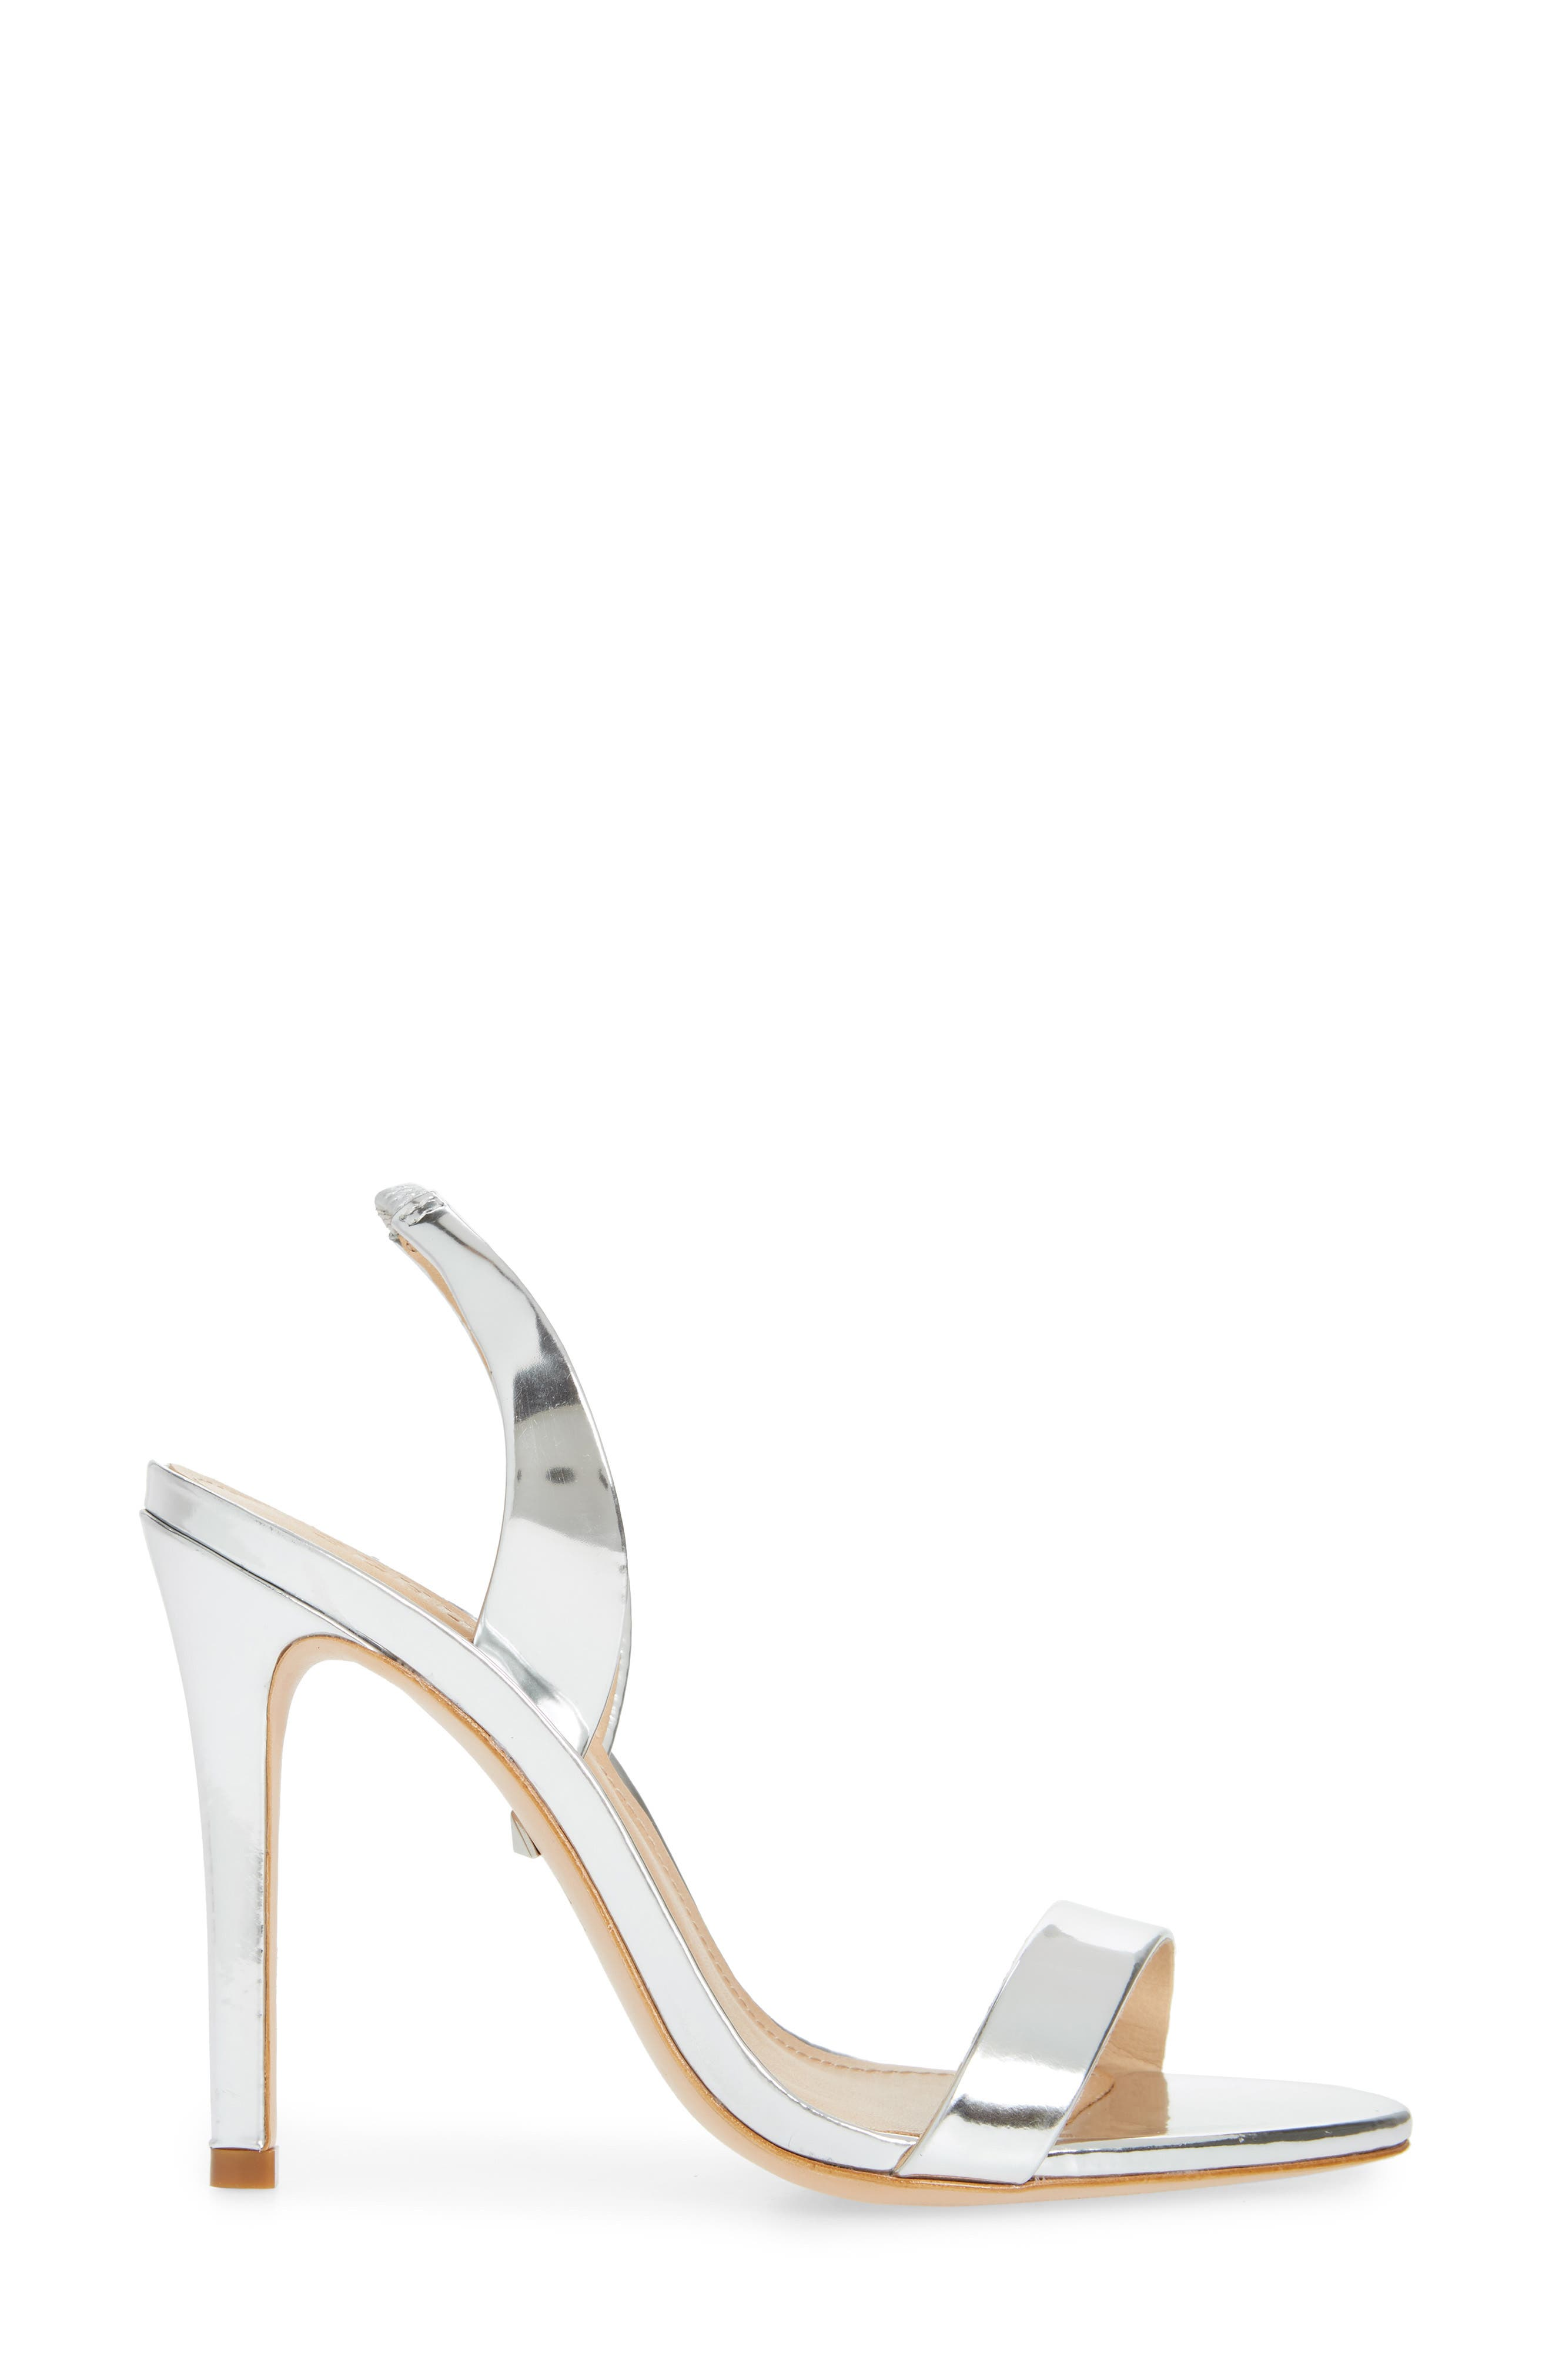 Luriane Sandal,                             Alternate thumbnail 3, color,                             SILVER PATENT LEATHER